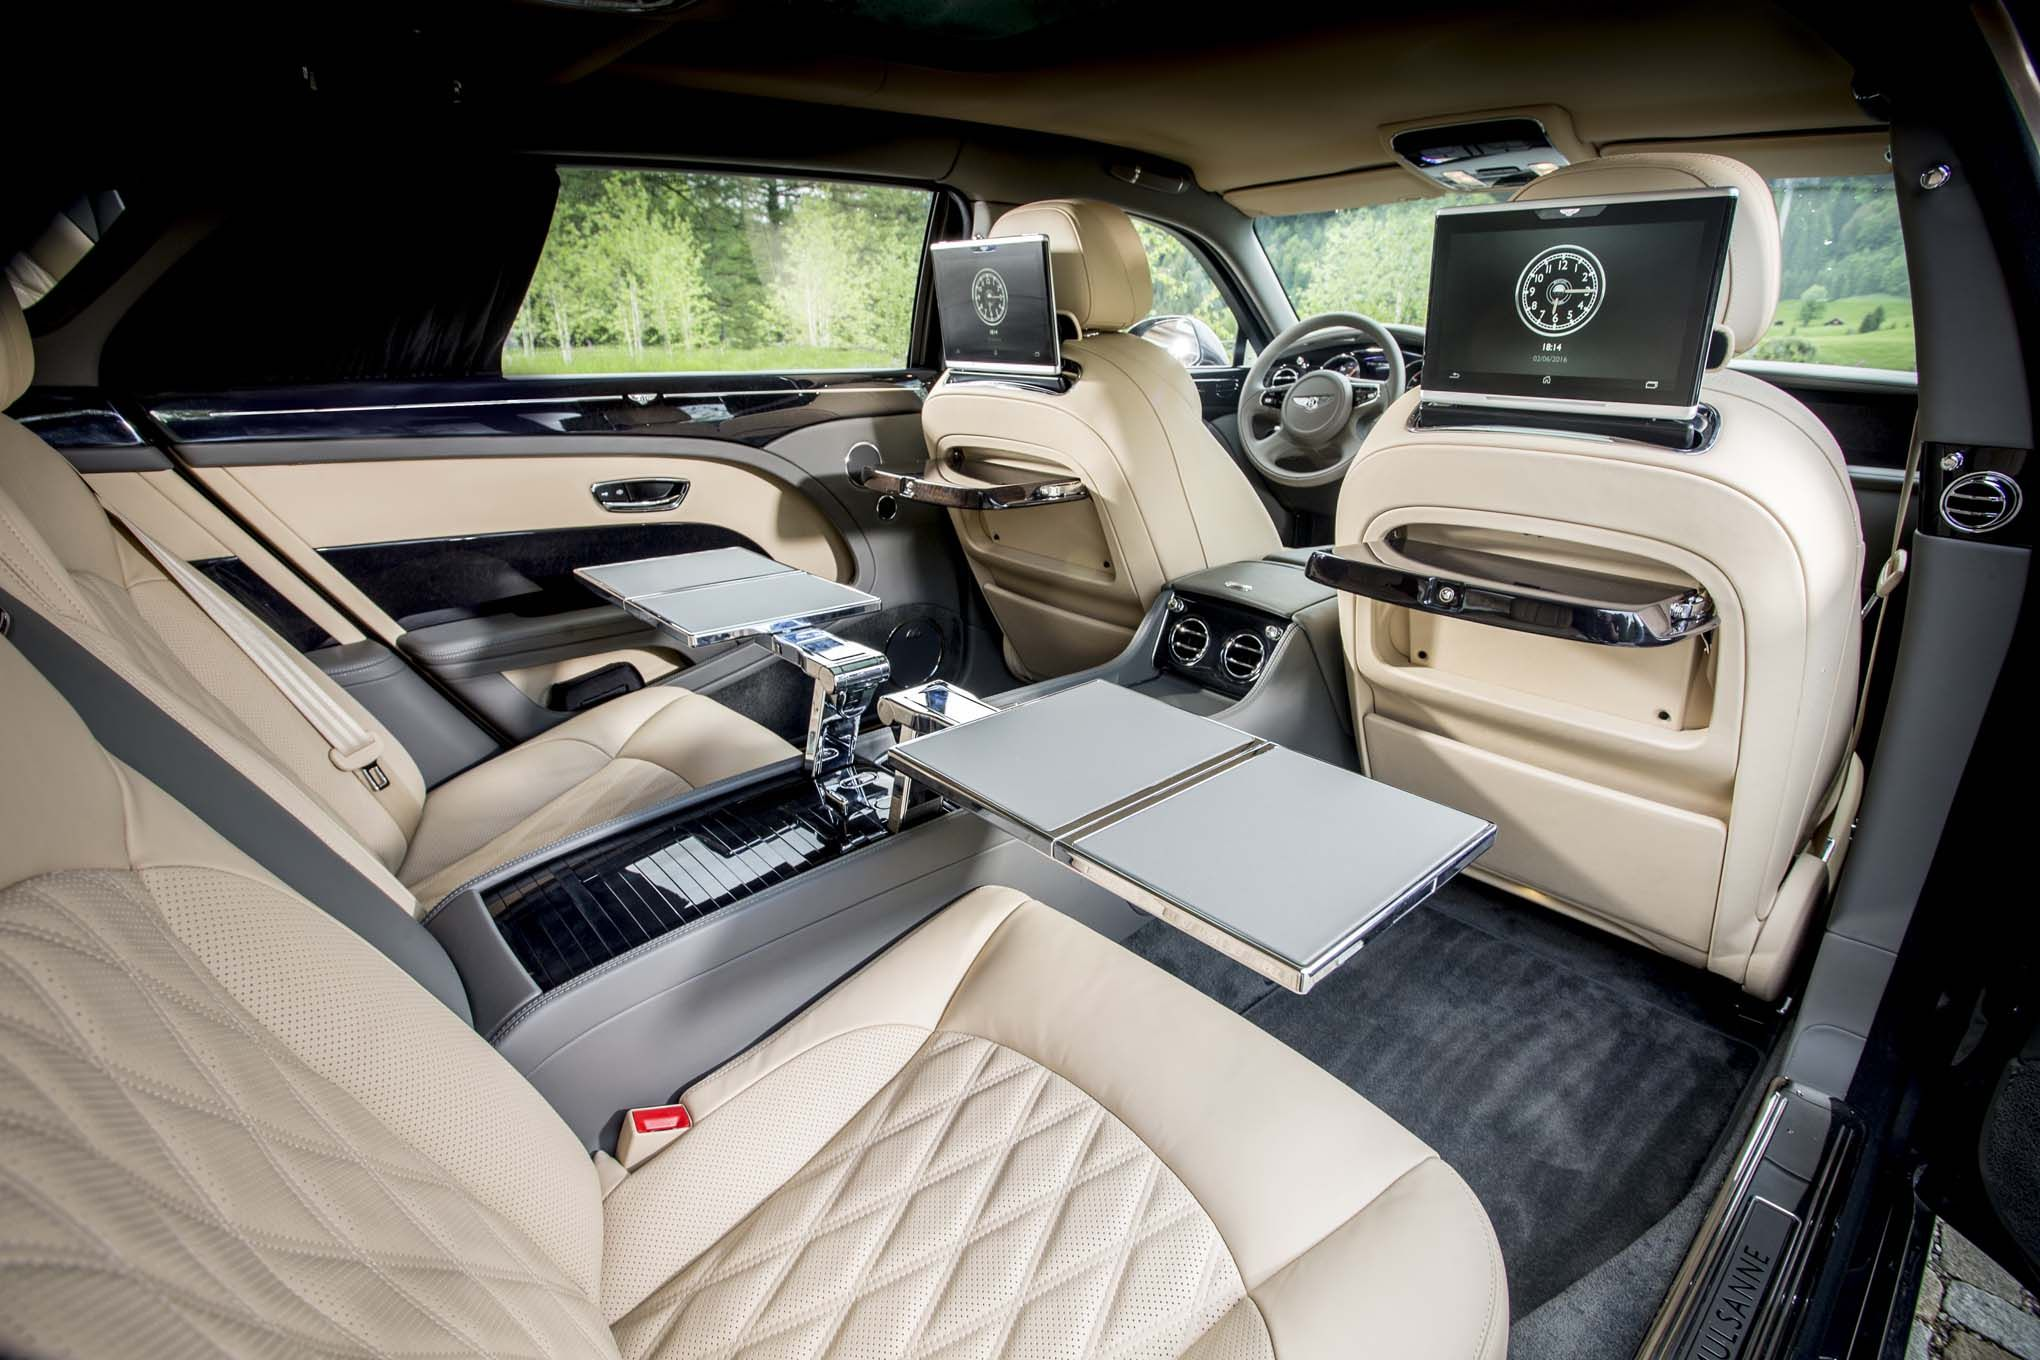 Bentley Limousine Interior Mulsanne Motors First Drive New